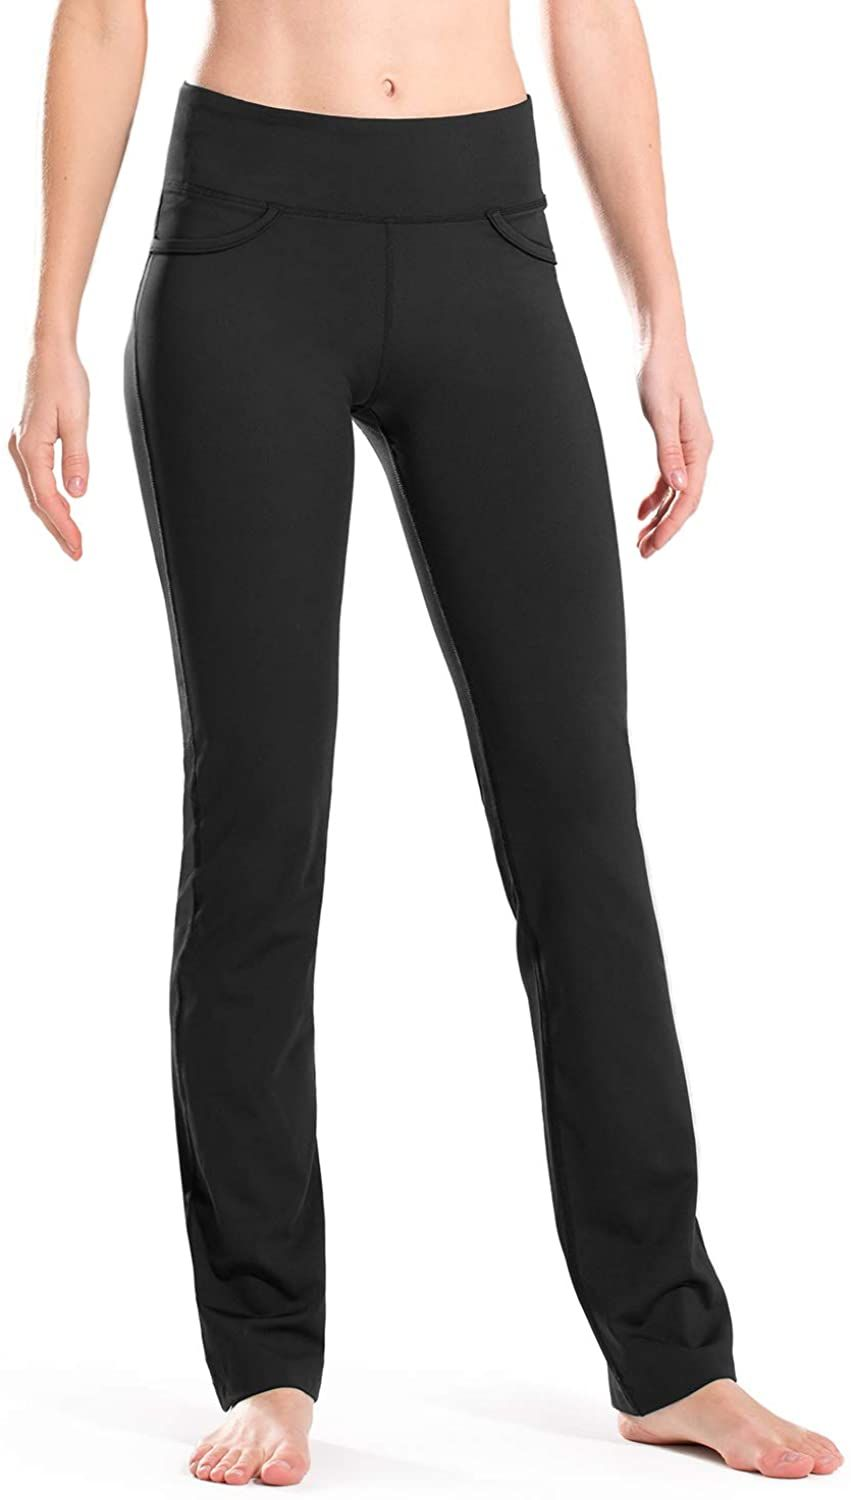 16++ Tall flare yoga pants ideas in 2021